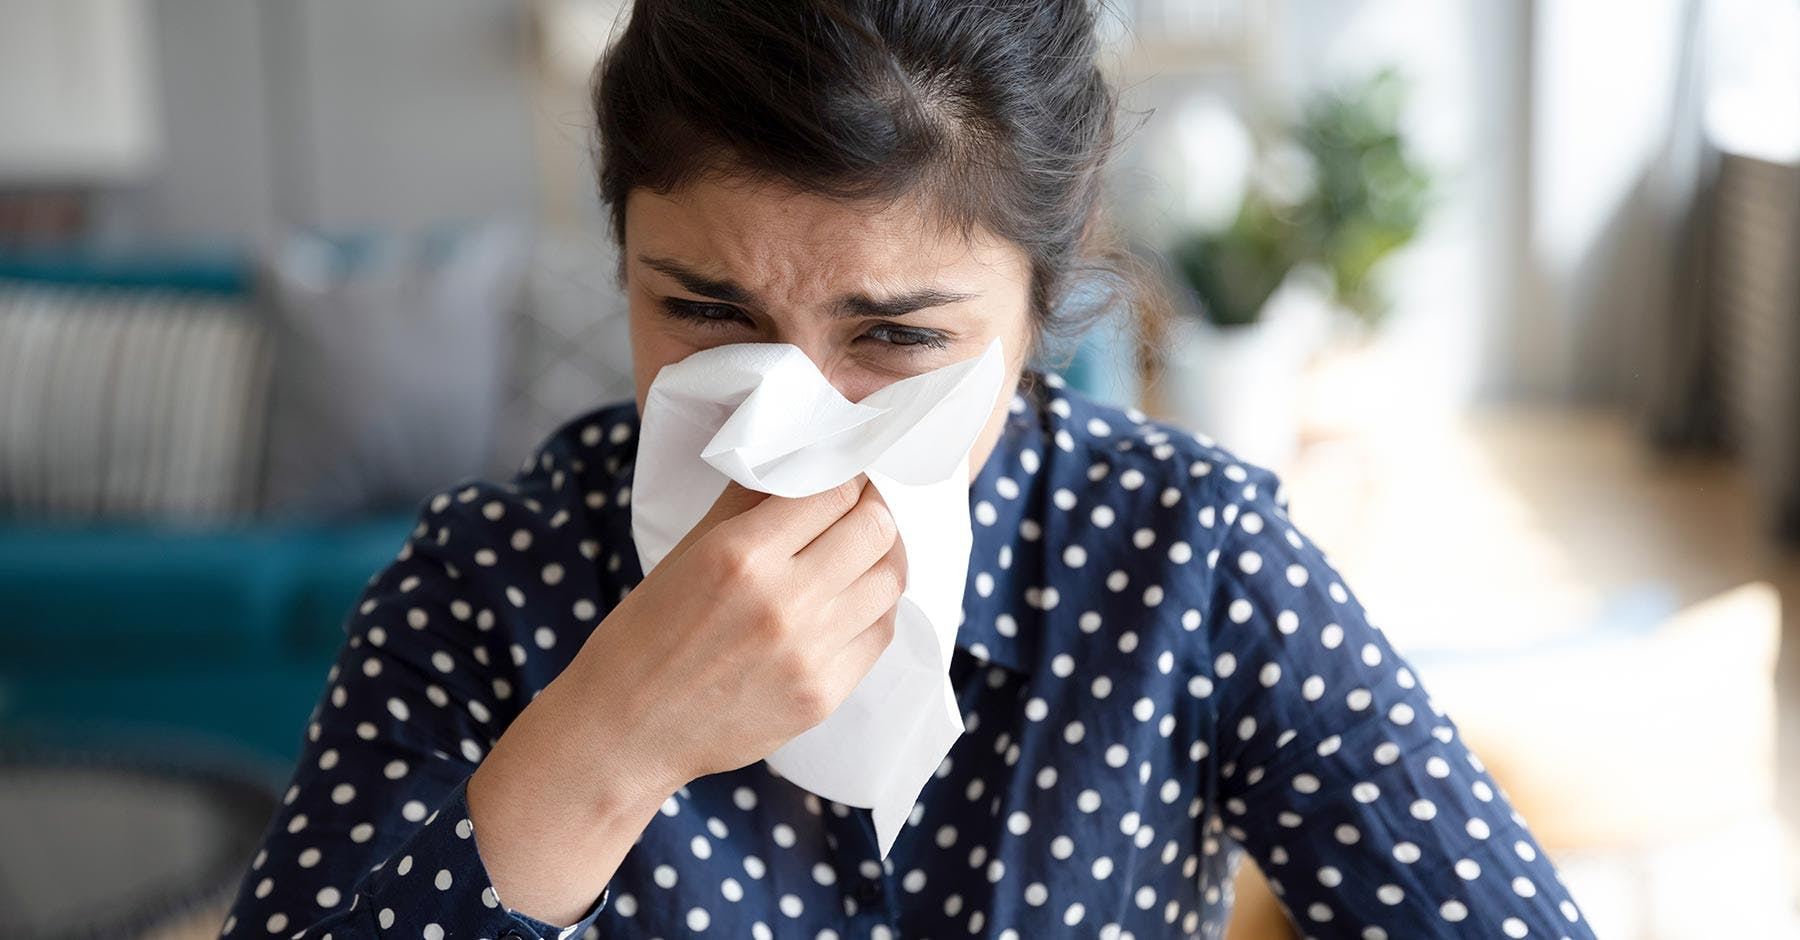 A black-haired woman is trying to blow her nose in a tissue